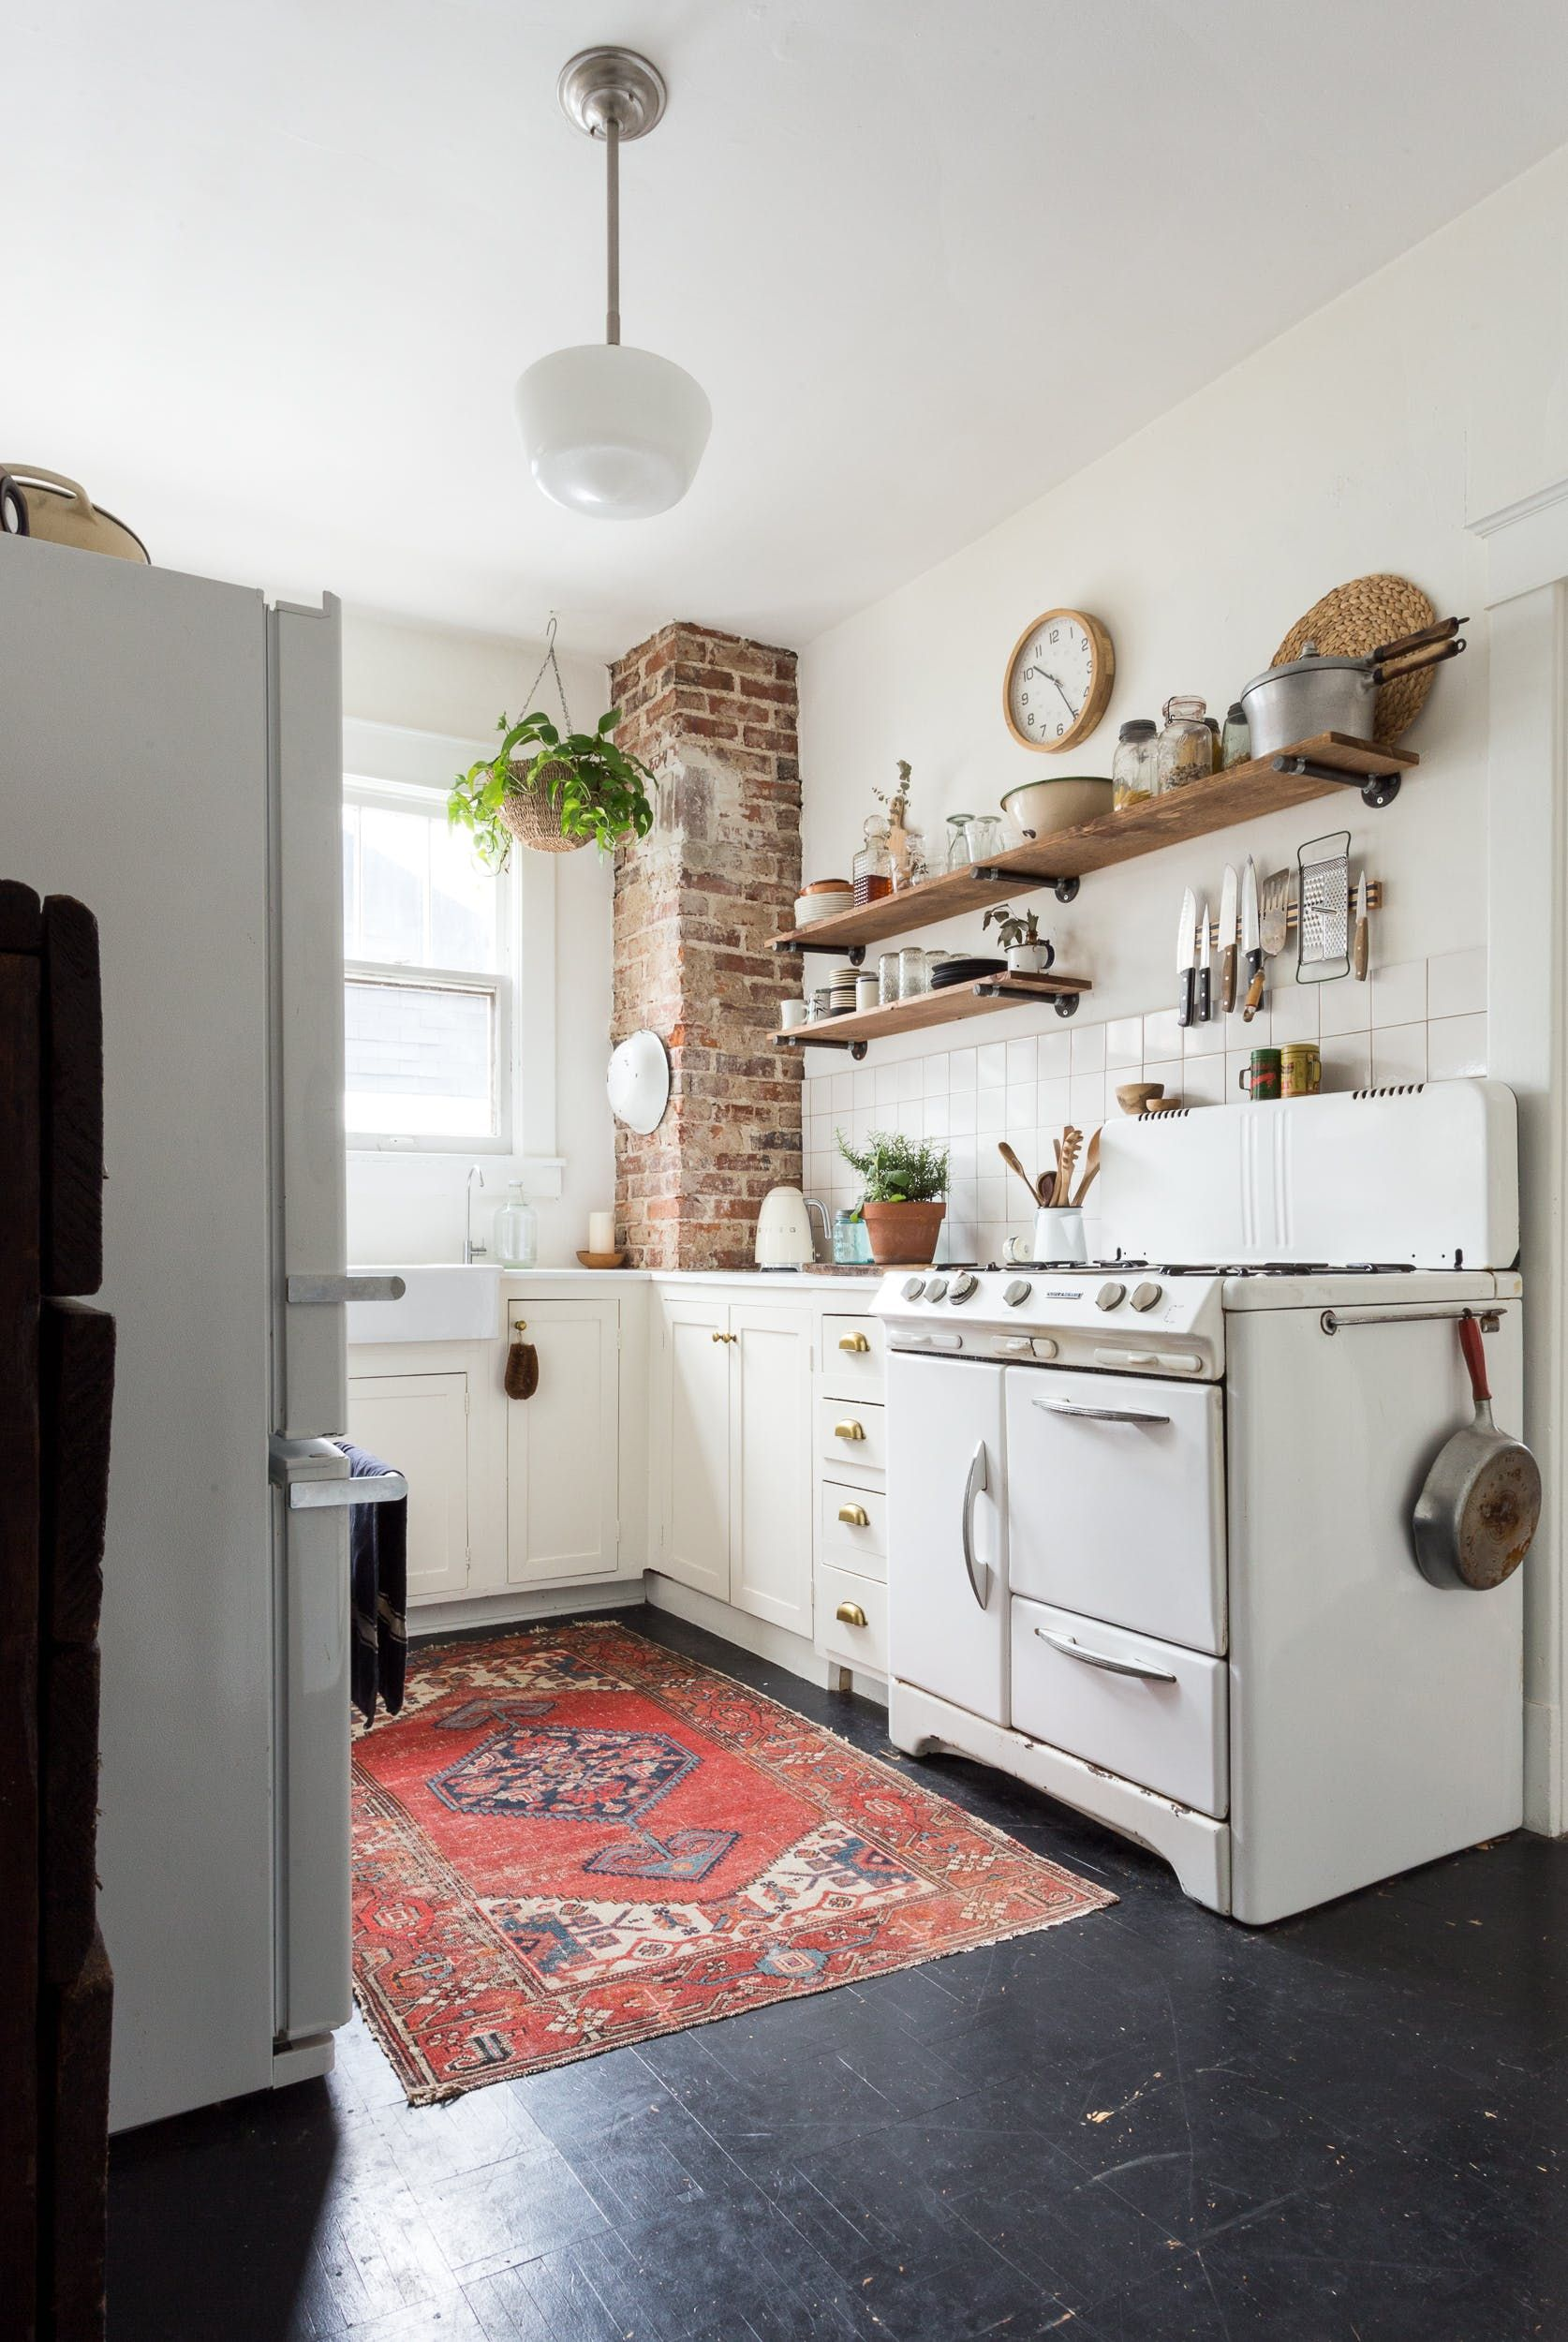 Kitchen Rug Cabinets Pictures The 7 Things You Ll Always Find In A Pinterest Perfect